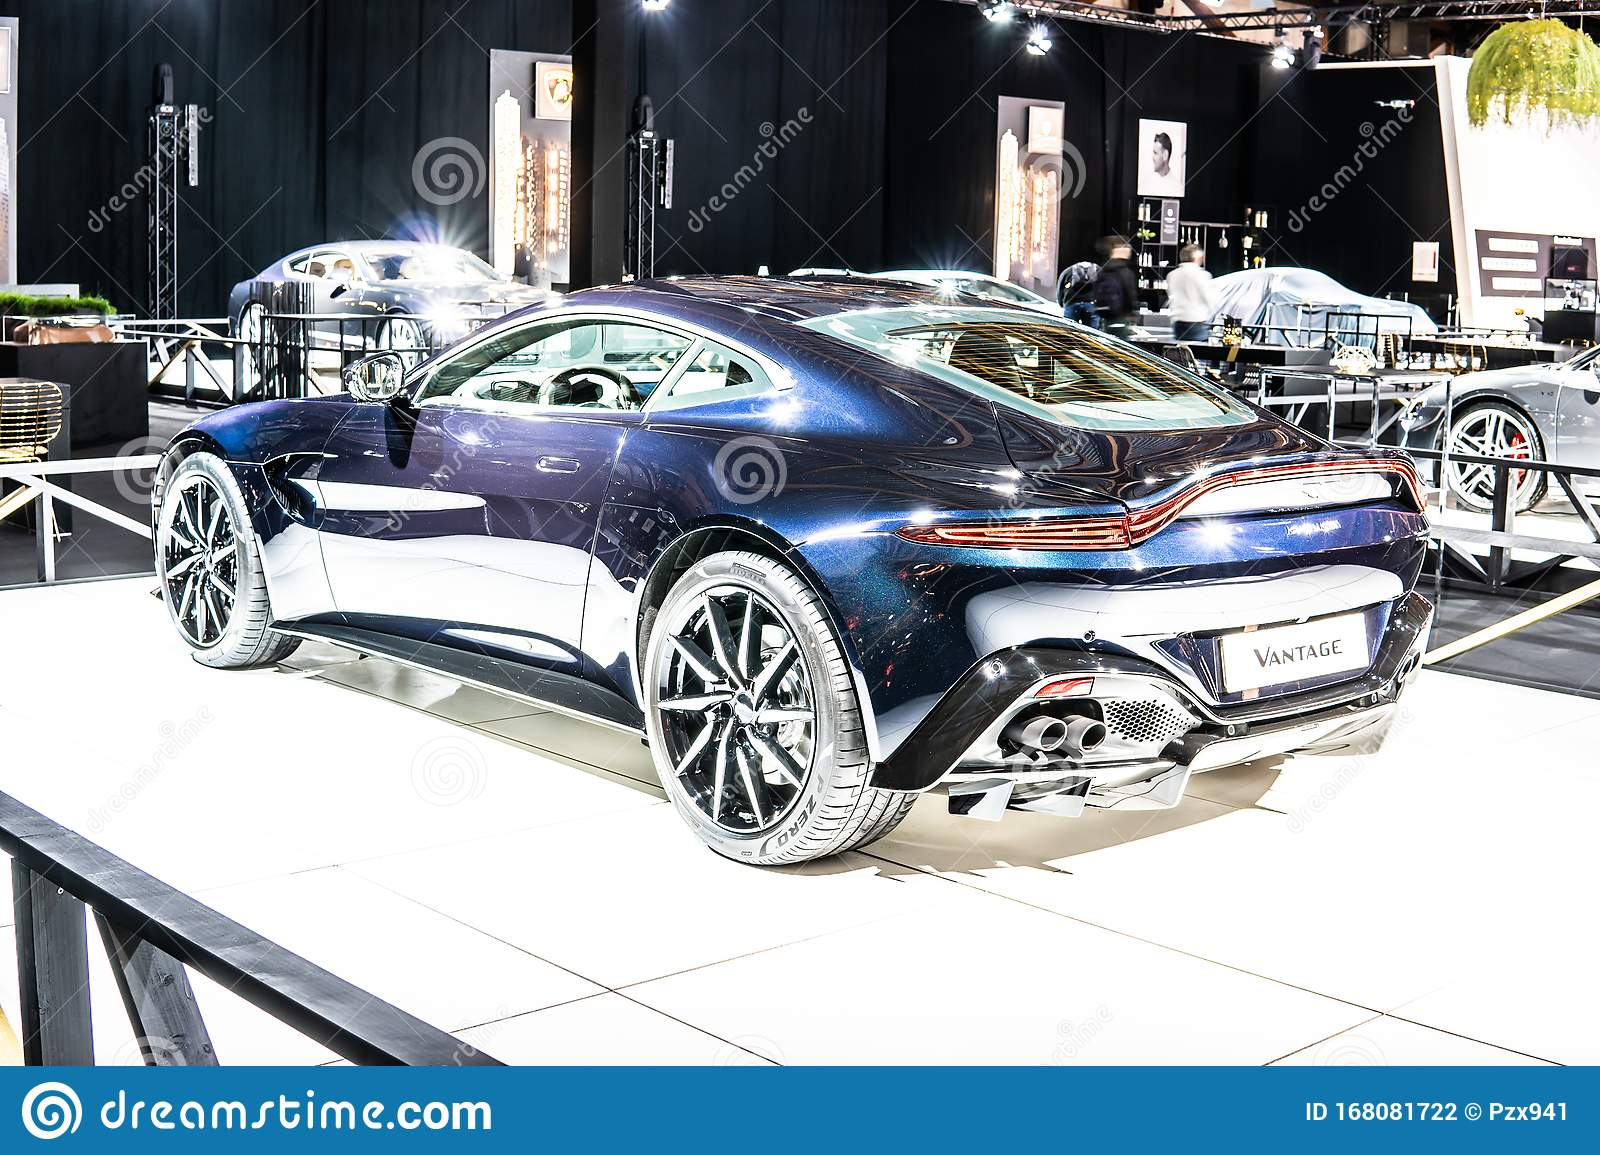 Aston Martin V8 Vantage At Brussels Motor Show Dream Cars British Two Seater Sports Car By Aston Martin Editorial Photography Image Of Auto Exhibition 168081722